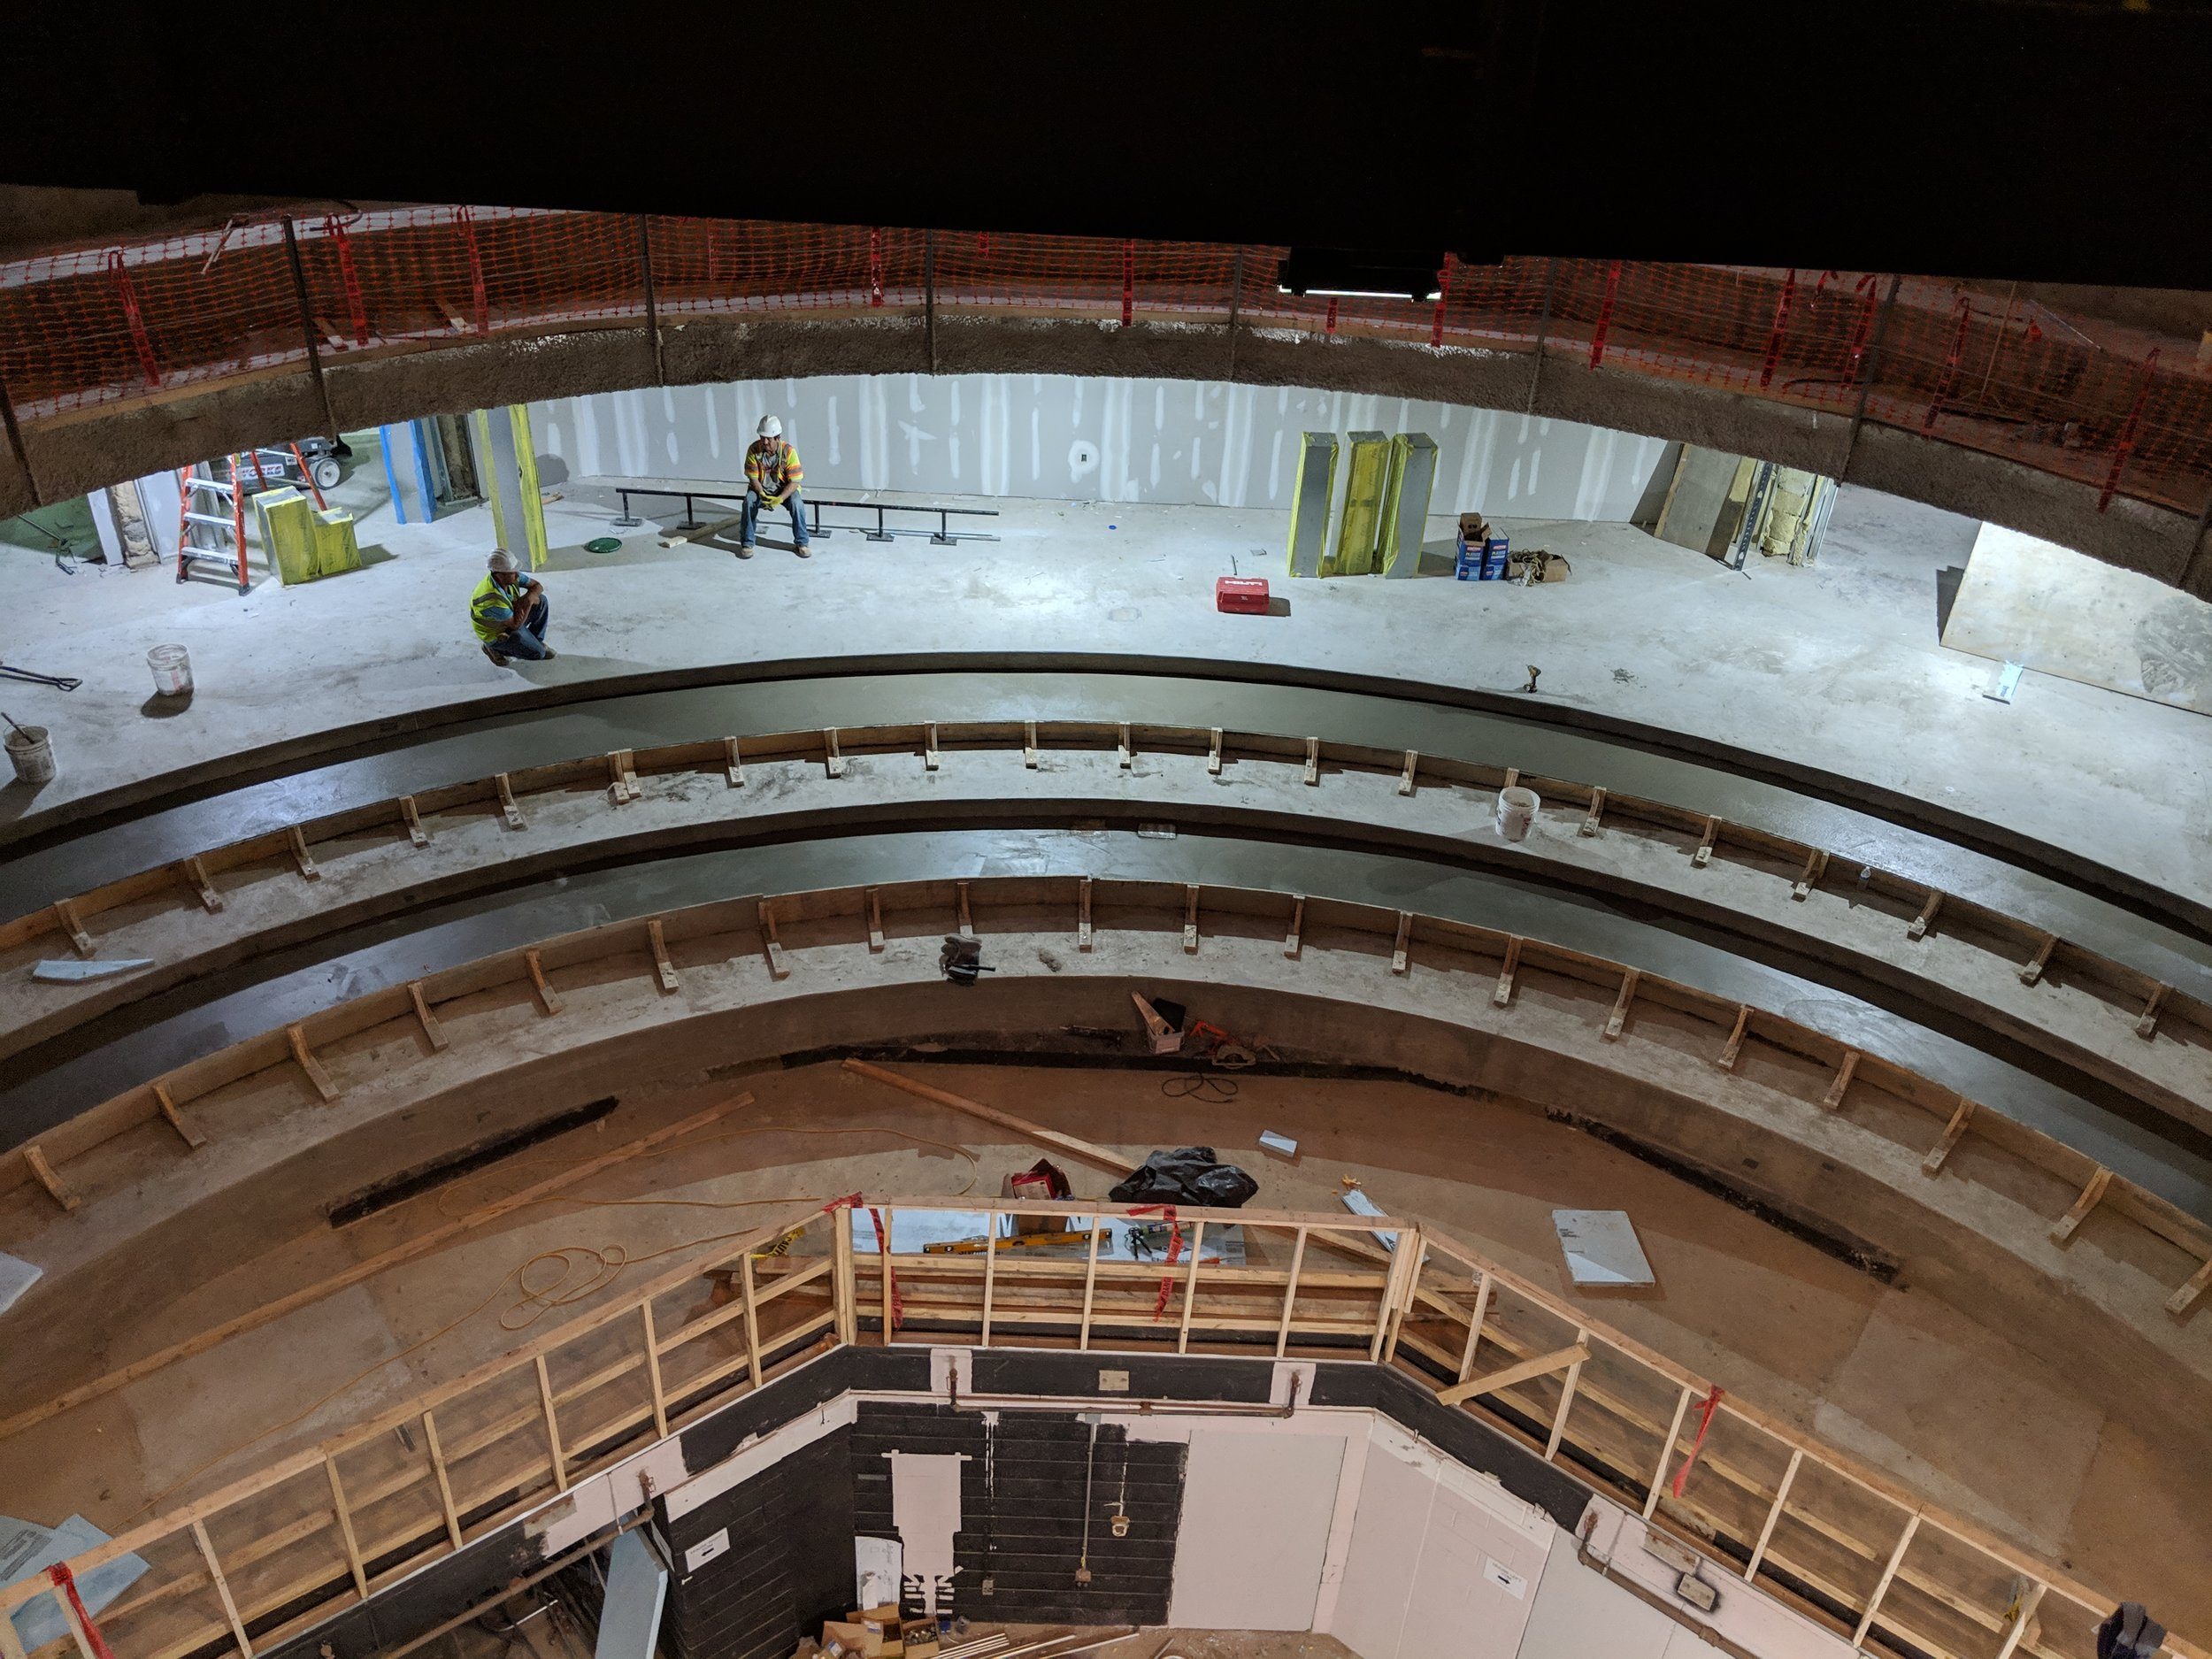 May 2019  - Concrete has been poured to form the new curved seating shape in the orchestra.